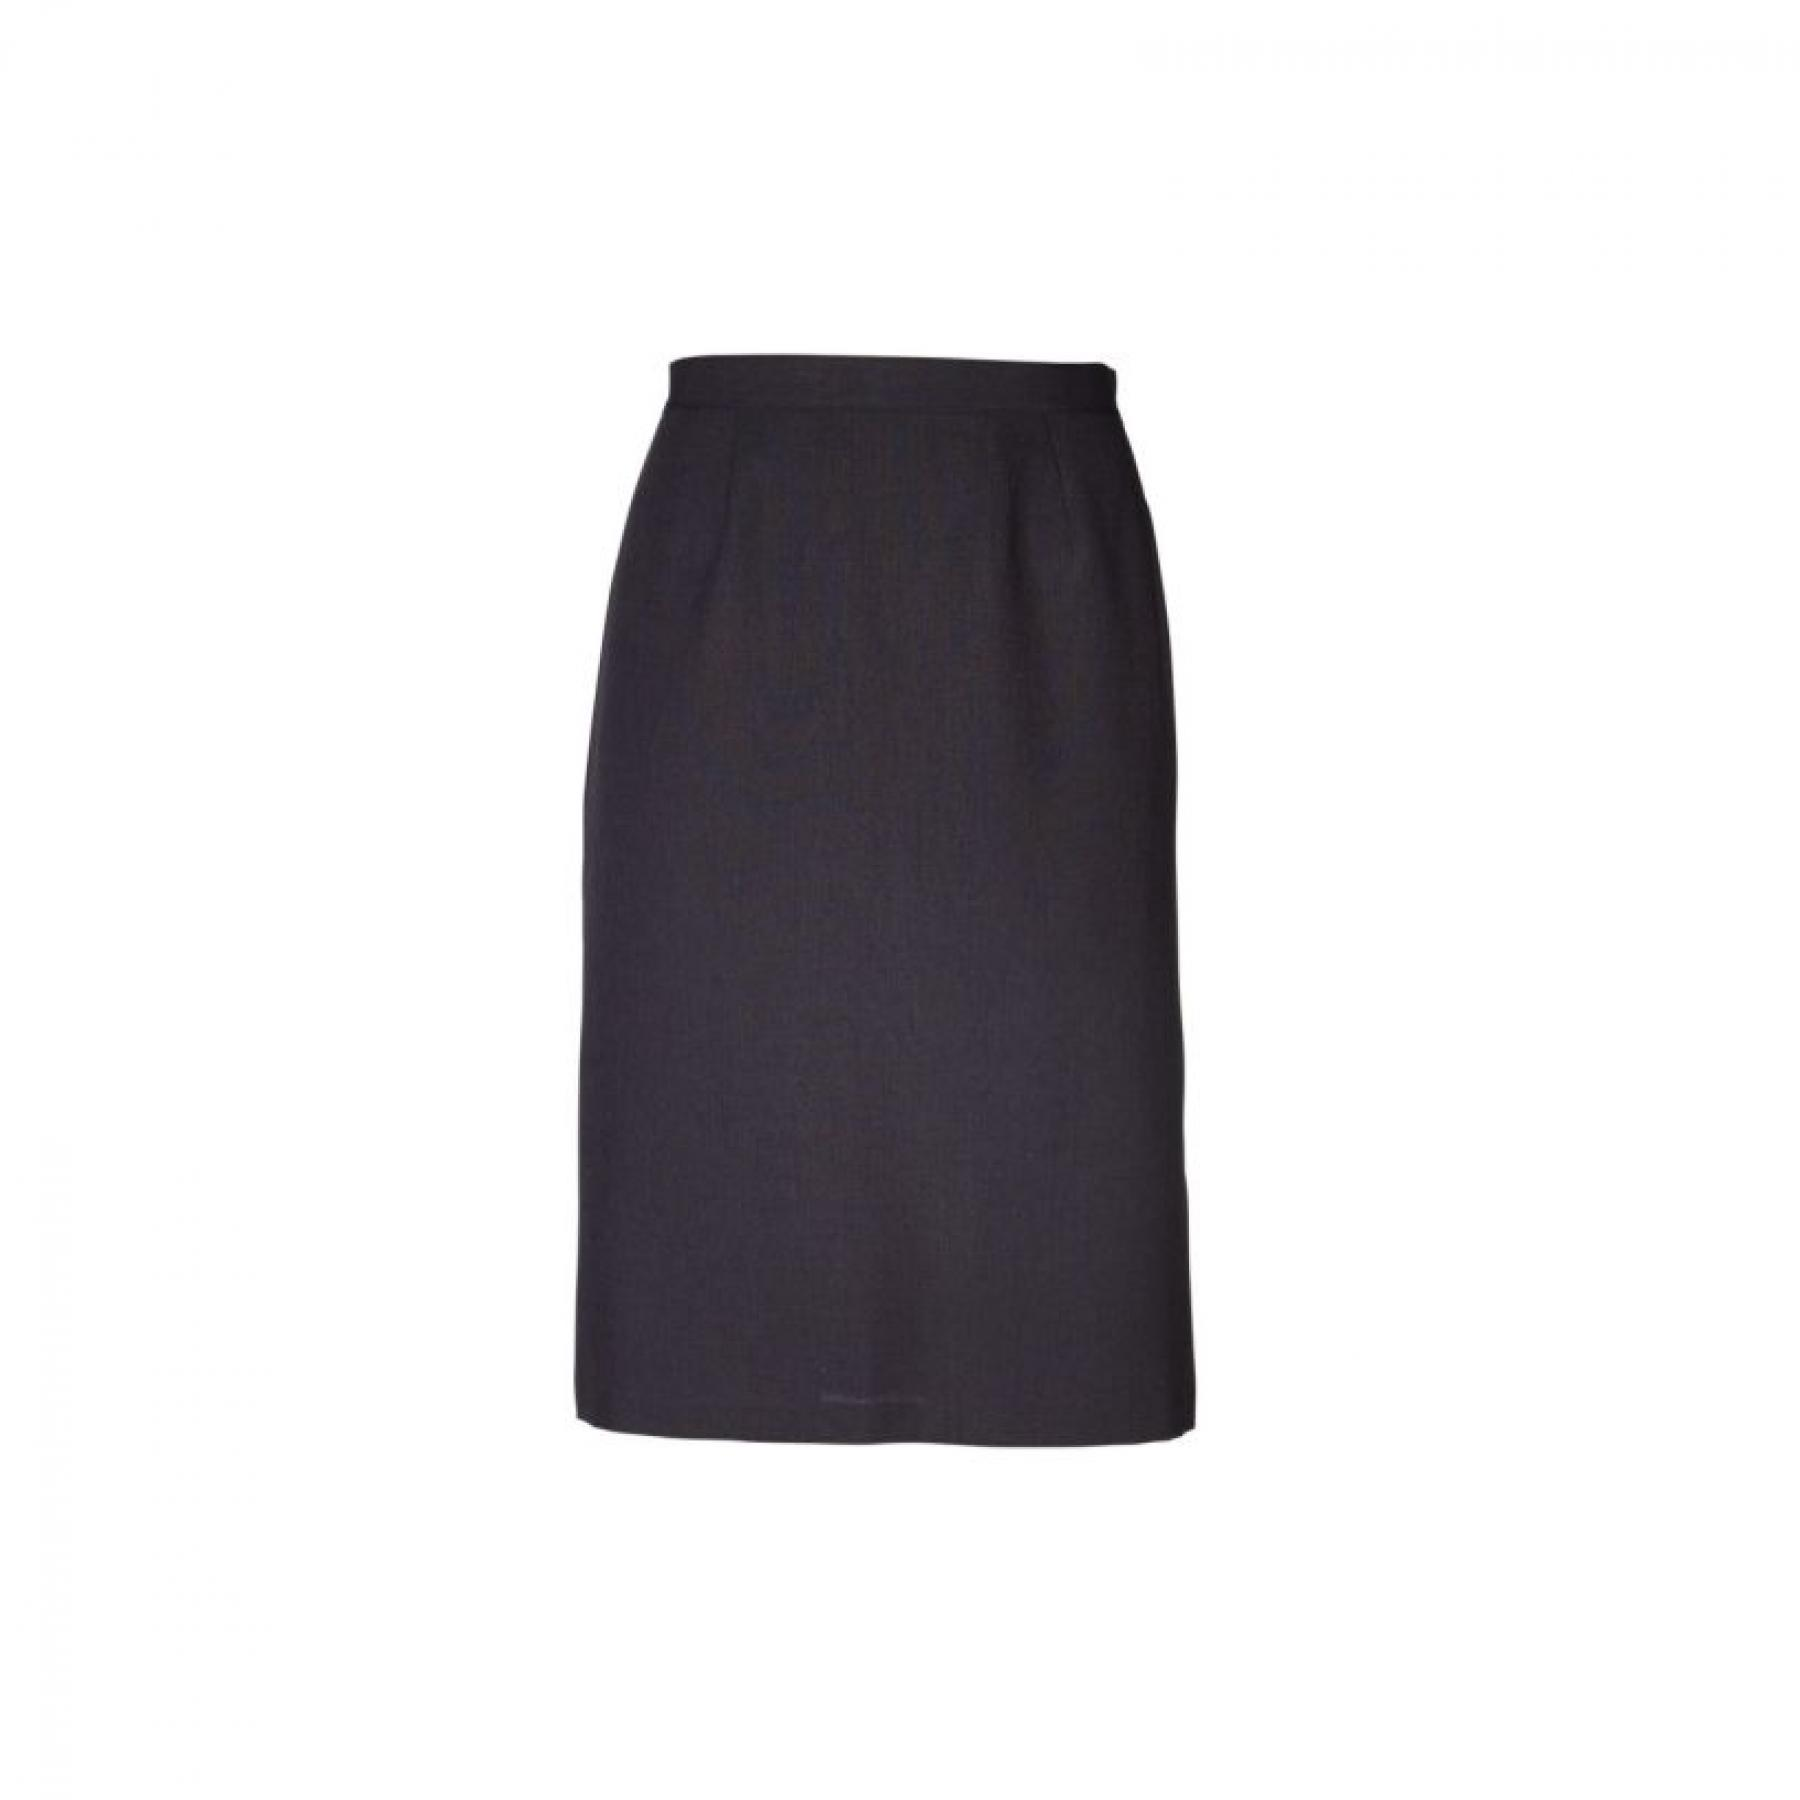 Emma Pencil Short Skirt - Cationic Charcoal